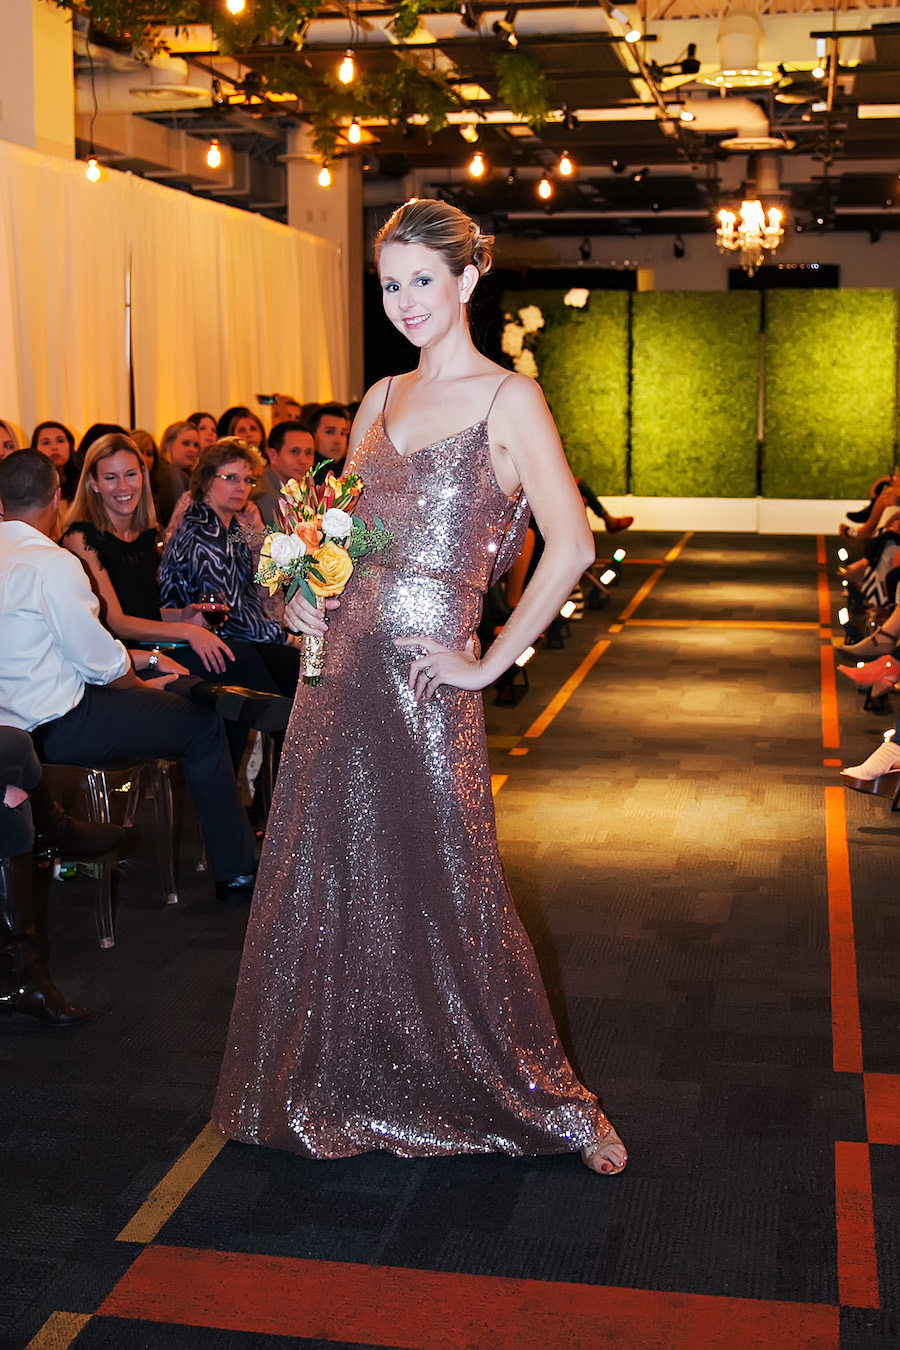 Sequined Waters 2301 Rose Gold Bridesmaid Dress | Marry Me Tampa Bay Wedding Week Bridal Fashion Runway Show | Tampa Bay Wedding Photographer Limelight Photography | Wedding Planner Glitz Events | Hair and Makeup Artist Michele Renee The Studio